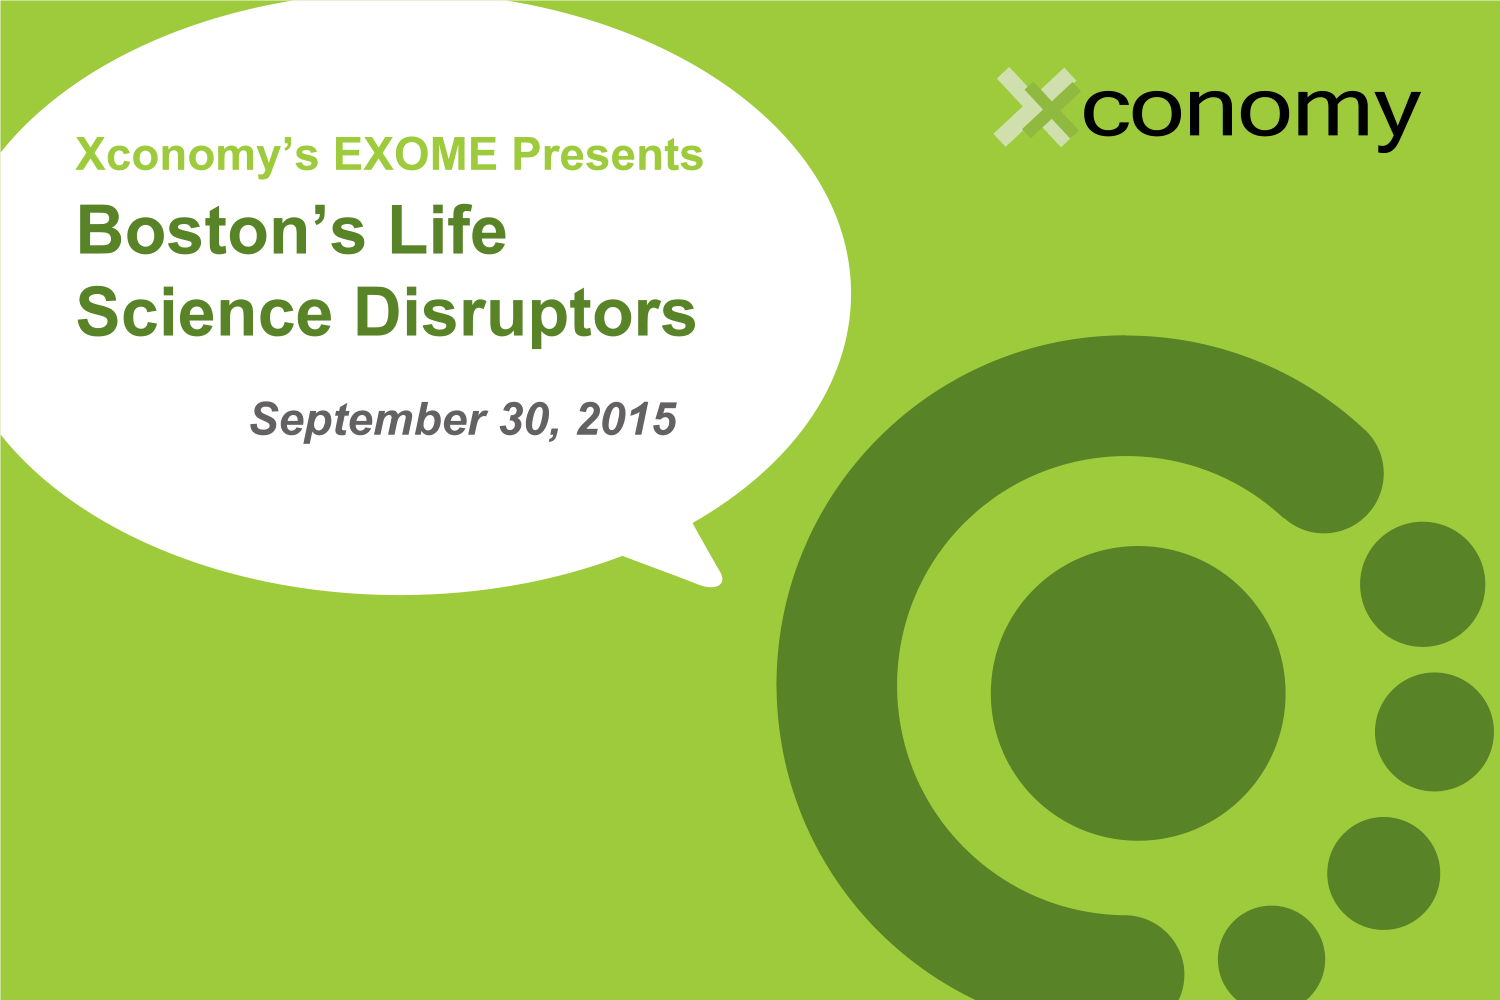 Xconomy's EXOME Presents: Boston's Life Disruptors